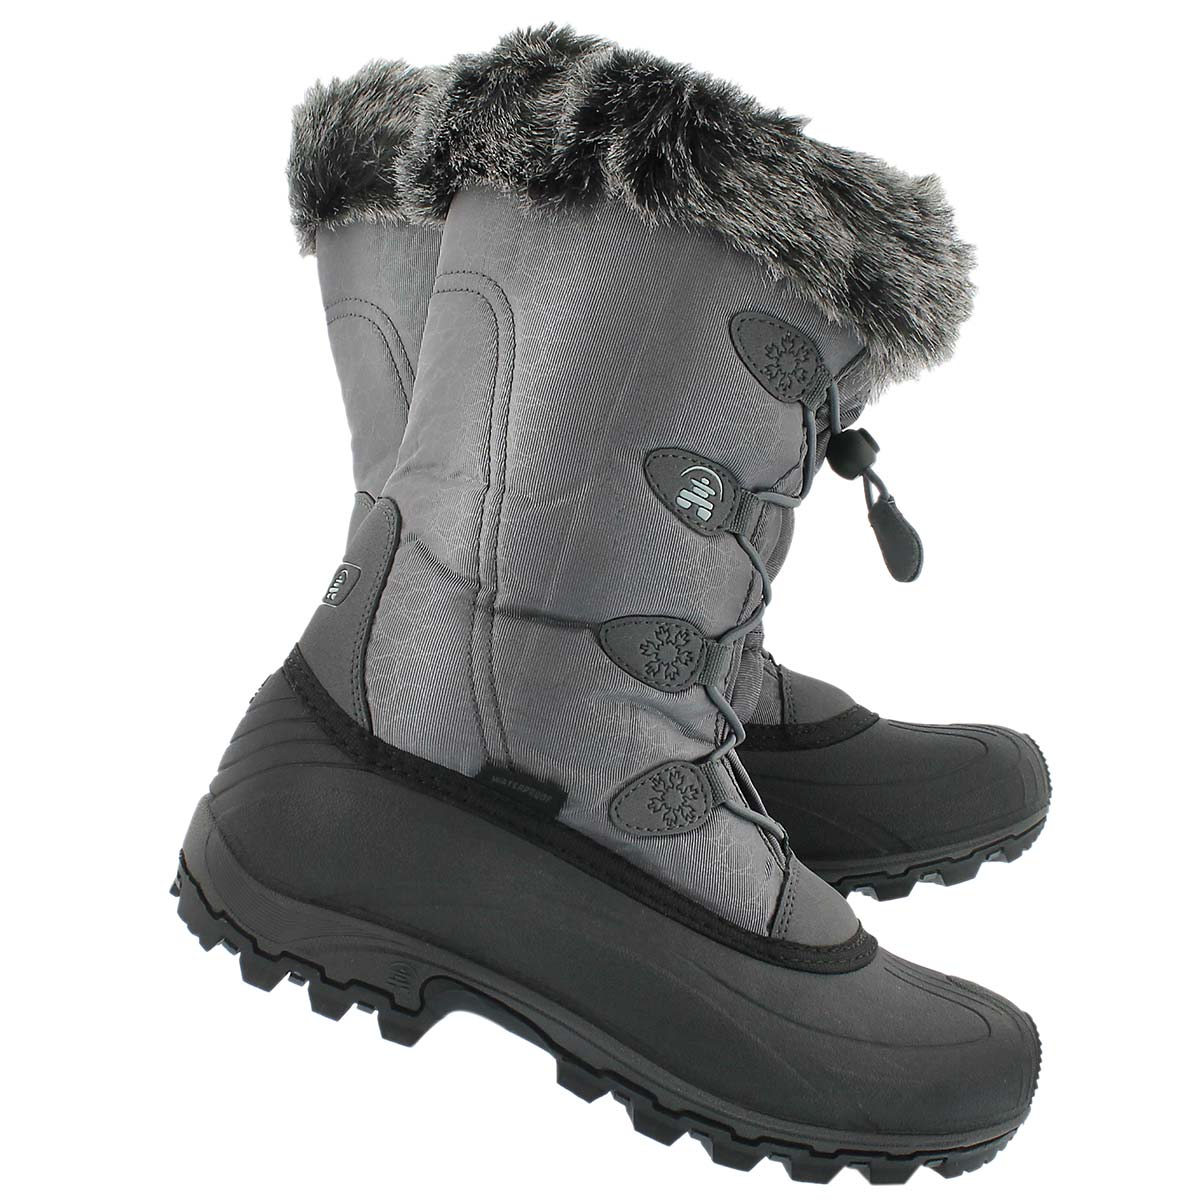 Lds Momentum charcoal winter boot